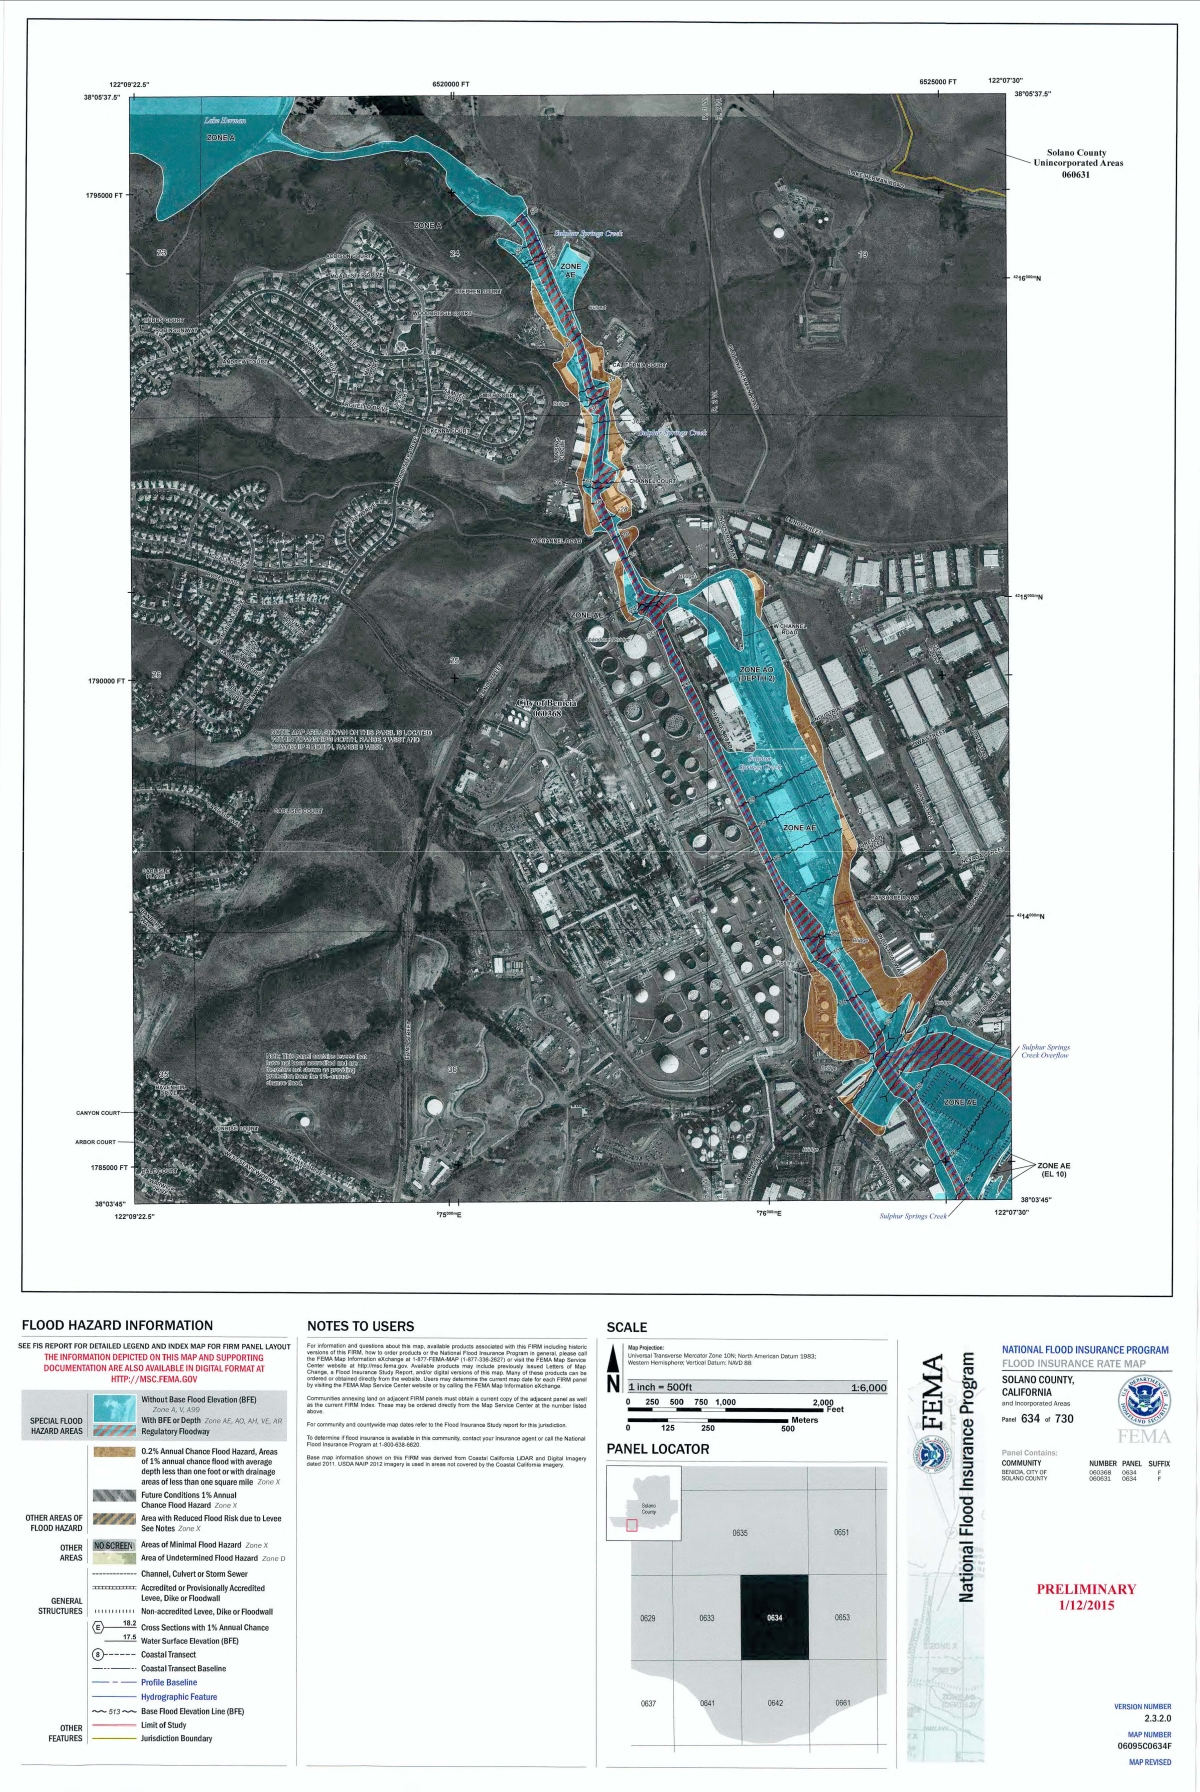 FEMA Flood Maps Valero Oil Train Risks Likely Greater Than - Fema flood maps by address